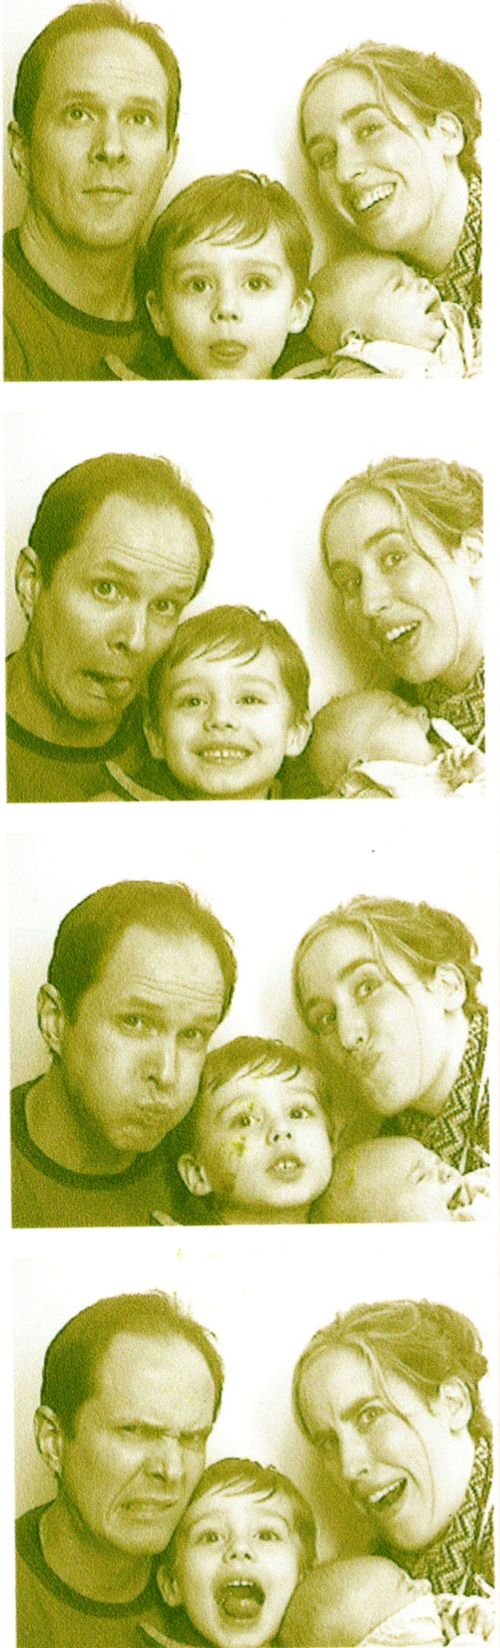 Photo booth 11-2009